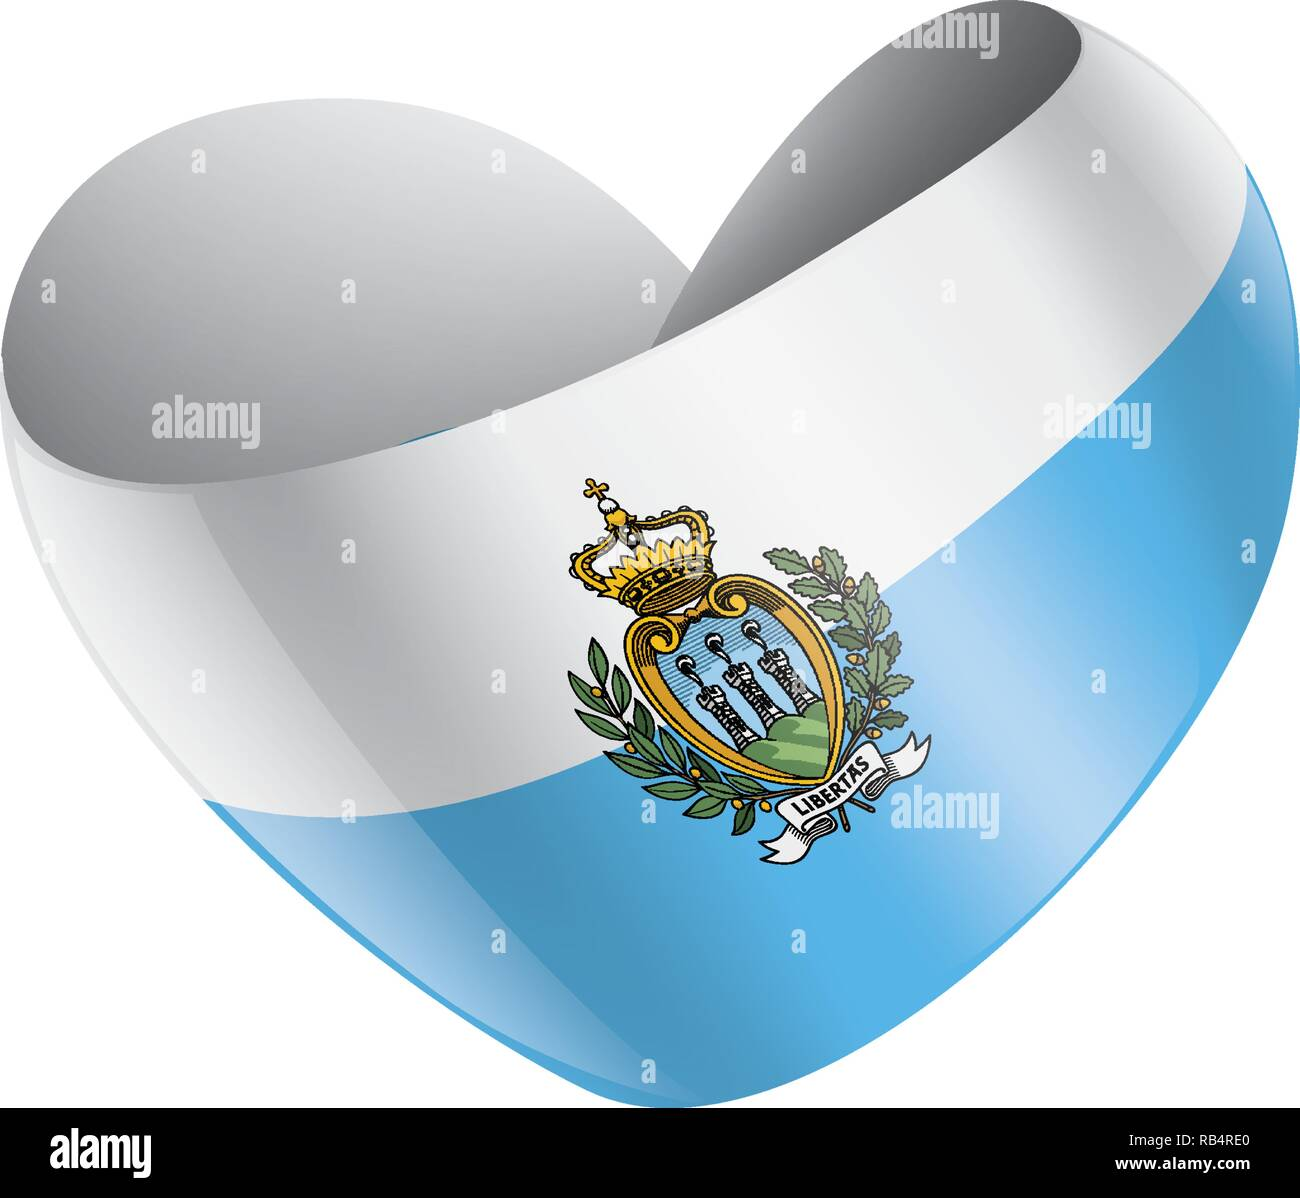 San Marino flag, vector illustration on a white background - Stock Image